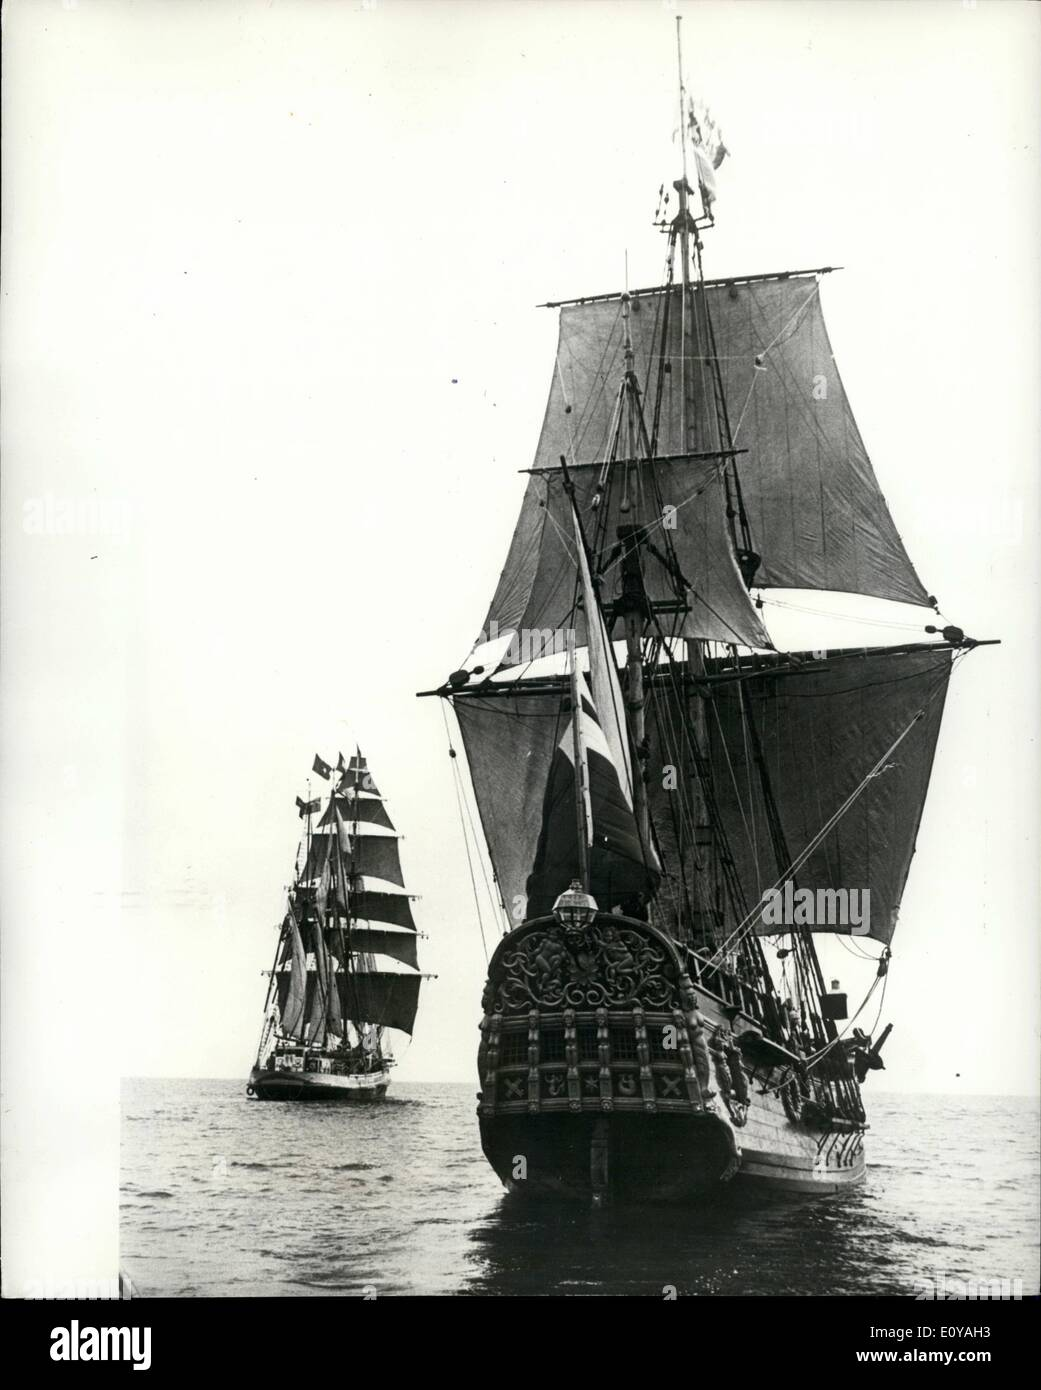 Sep. 09, 1969 - Accident of The Regina Maris Delays Sailing To Australia. A mock gun battle between two sailing ships in Plymouth Sound, was stopped after a cannon exploded injuring a young naval officer. Roger Callan, 22, had reloaded for his fifth shot from the deck of the Norwegian barquentine Regina Maris, when the charge burst in the barrel and blew up in his face. Boatswain Callan received extensive cuts and burns to his face and arms. After first aid treatment s motor launch landed him at Millbay Docks, where a waiting ambulance rushed him to hospital - Stock Image